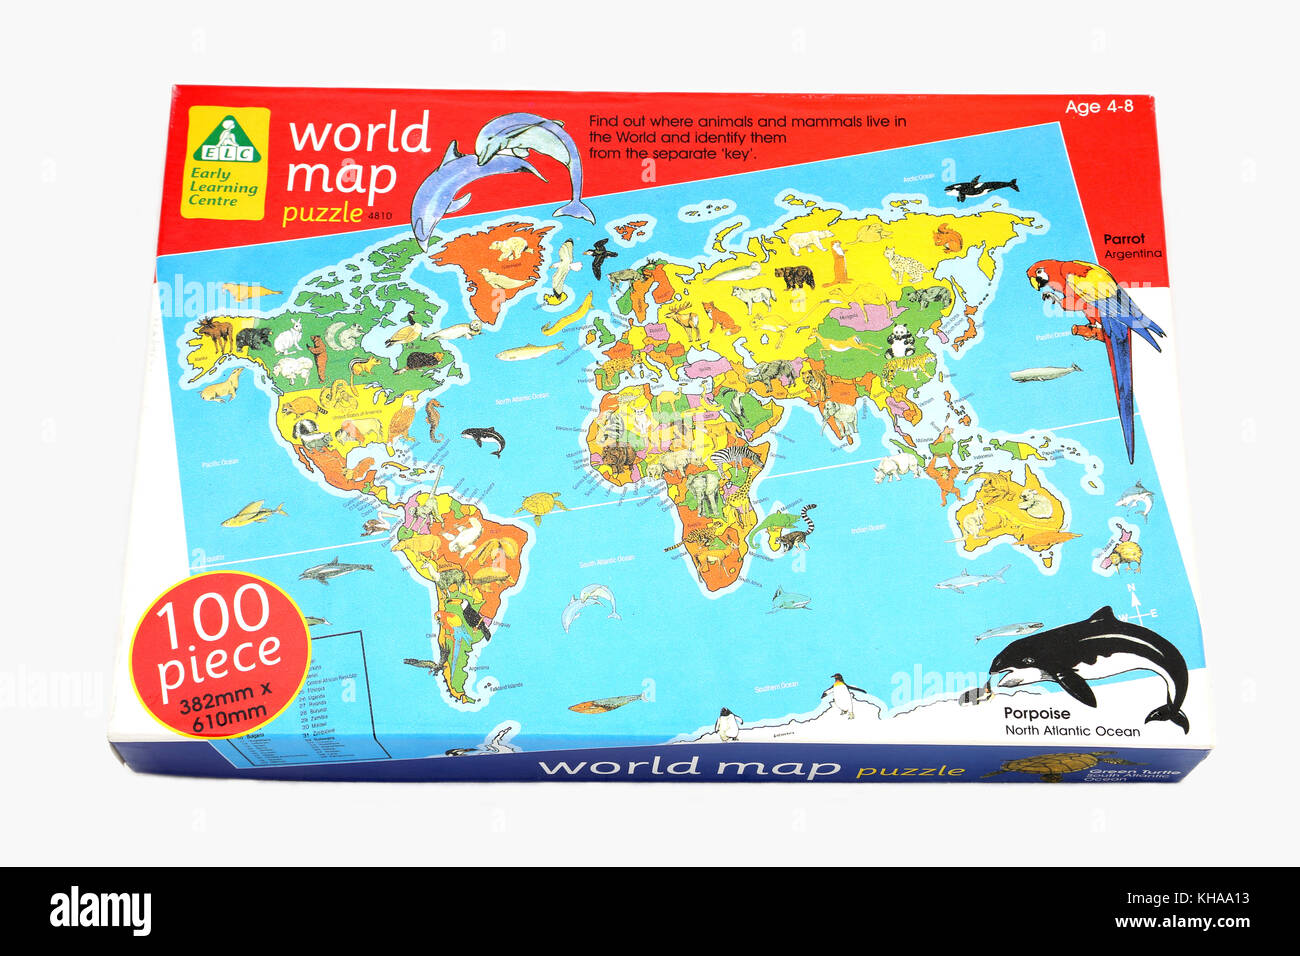 Jigsaw puzzle world map stock photos jigsaw puzzle world map early learning centre world map jigsaw puzzle stock image gumiabroncs Images